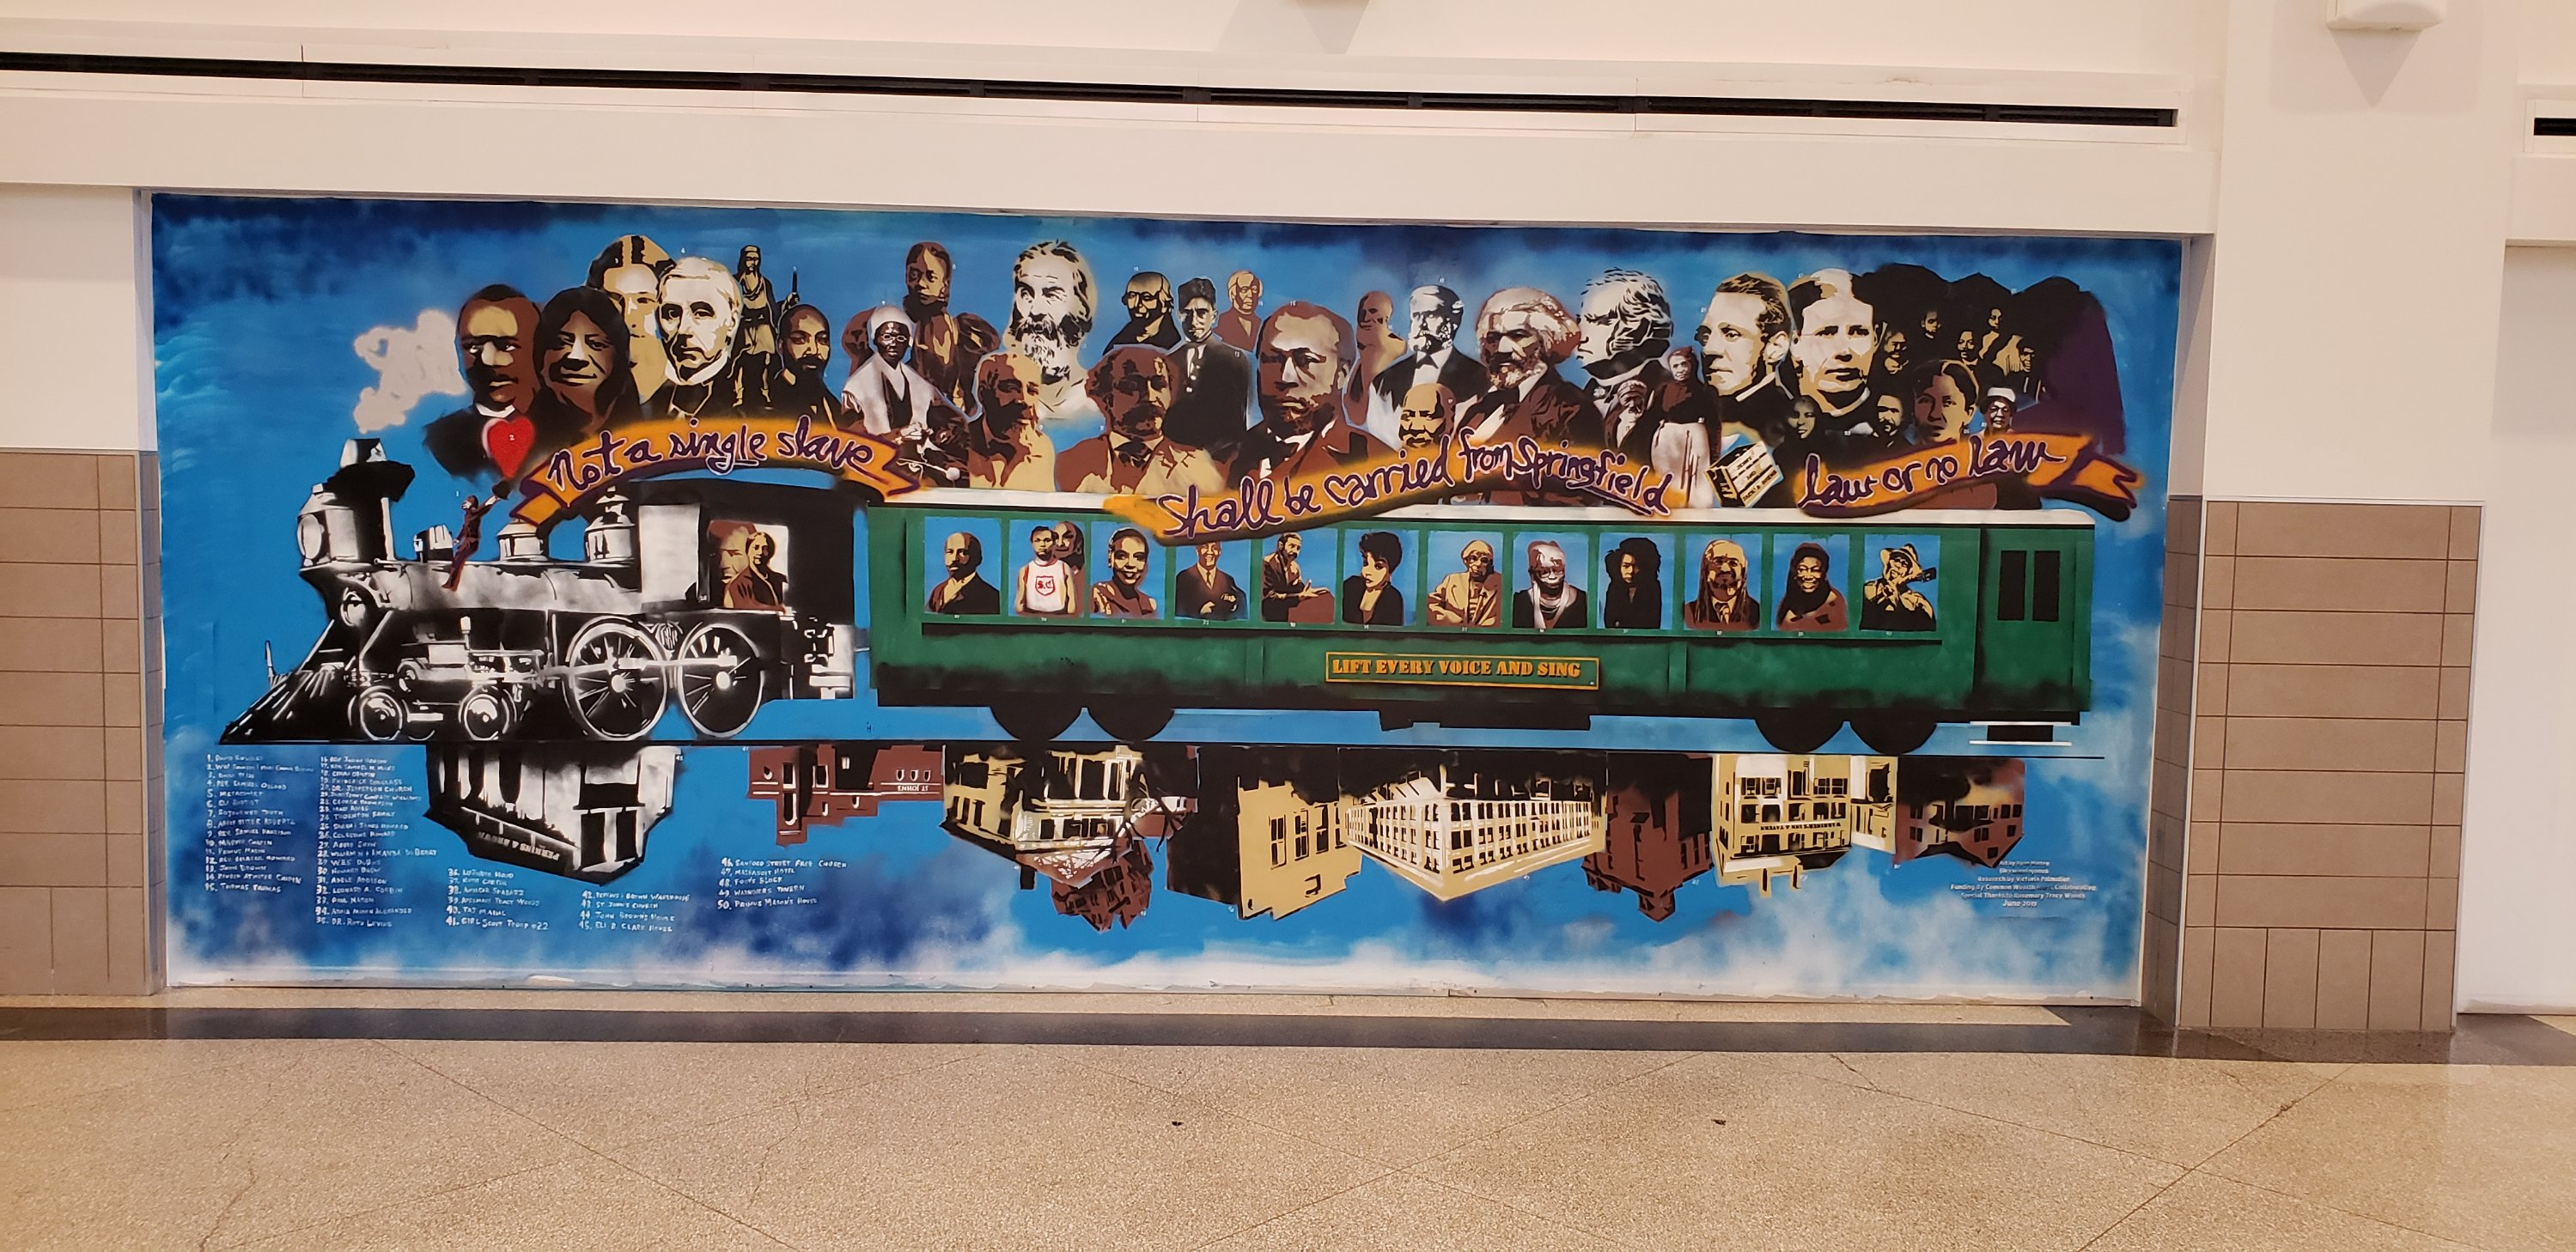 Mural of black historic figures from Springfield and greater New England. The figures are arranged as passengers on a train. The background is blue.